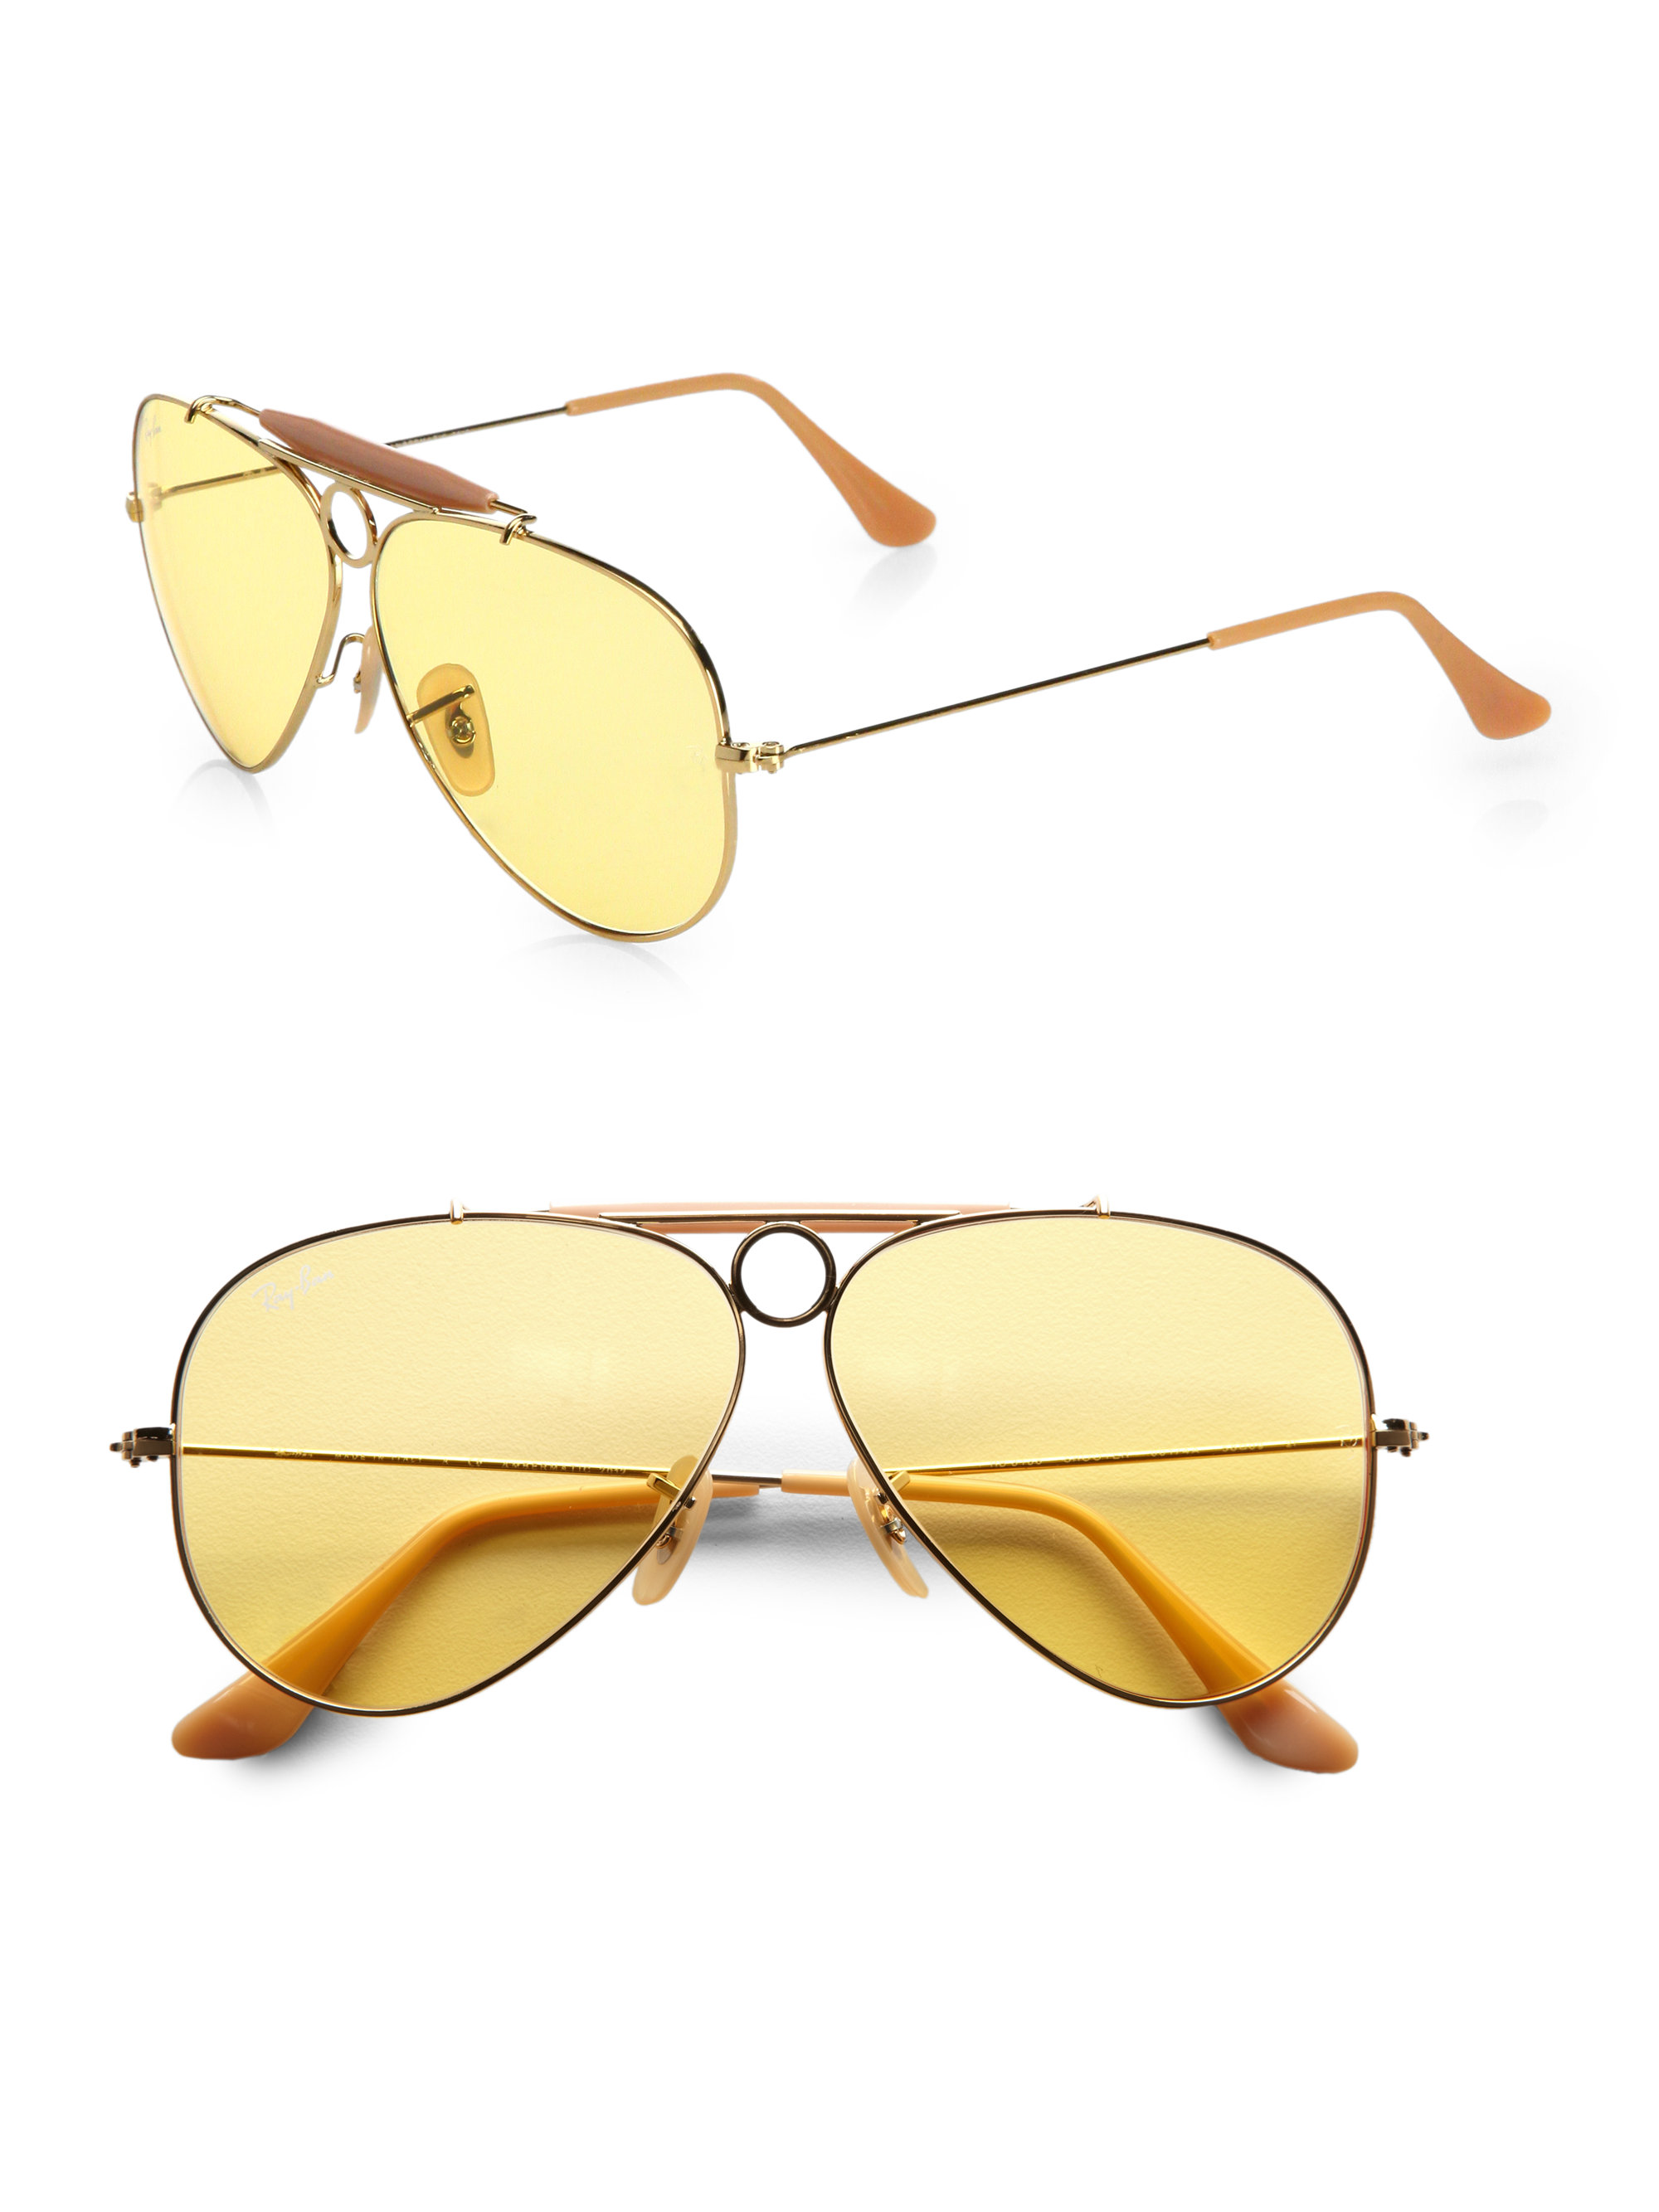 8d0774f2fa8a0 ... sweden lyst ray ban ambermatic shooter aviator sunglasses in metallic  62009 dd51b